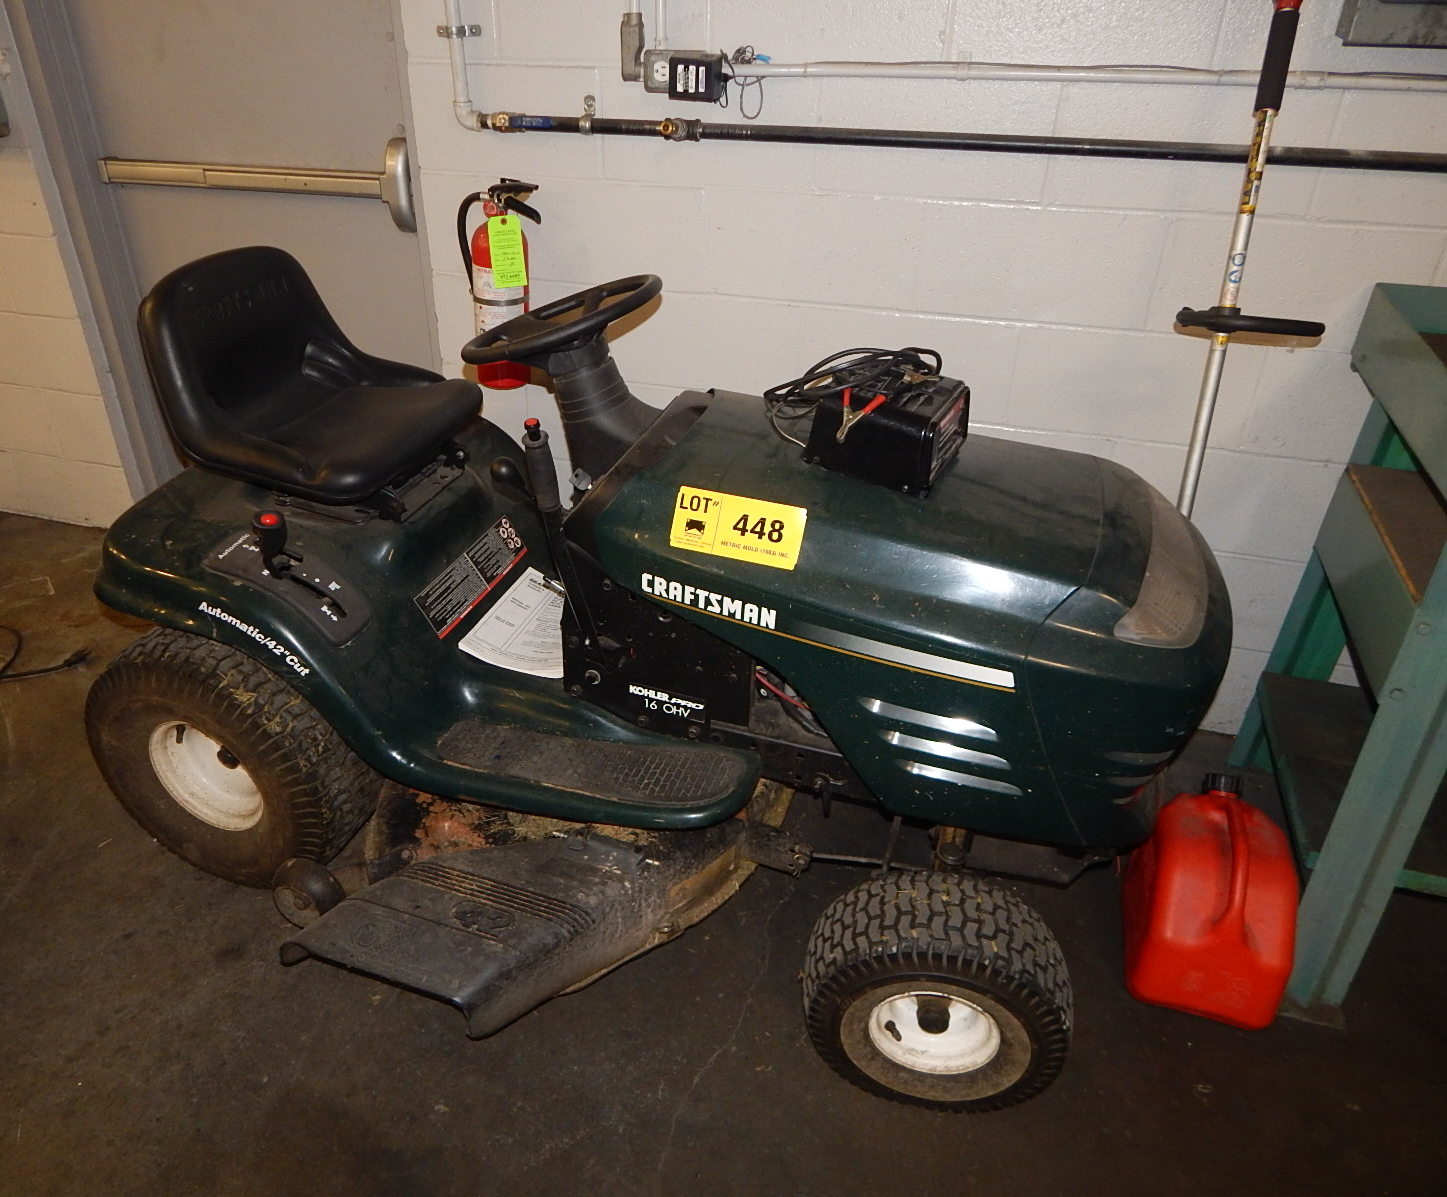 Lot 448 - LOT/ CRAFTSMAN LAWN TRACTOR WITH WEED WHACKER (BUILDING 2)